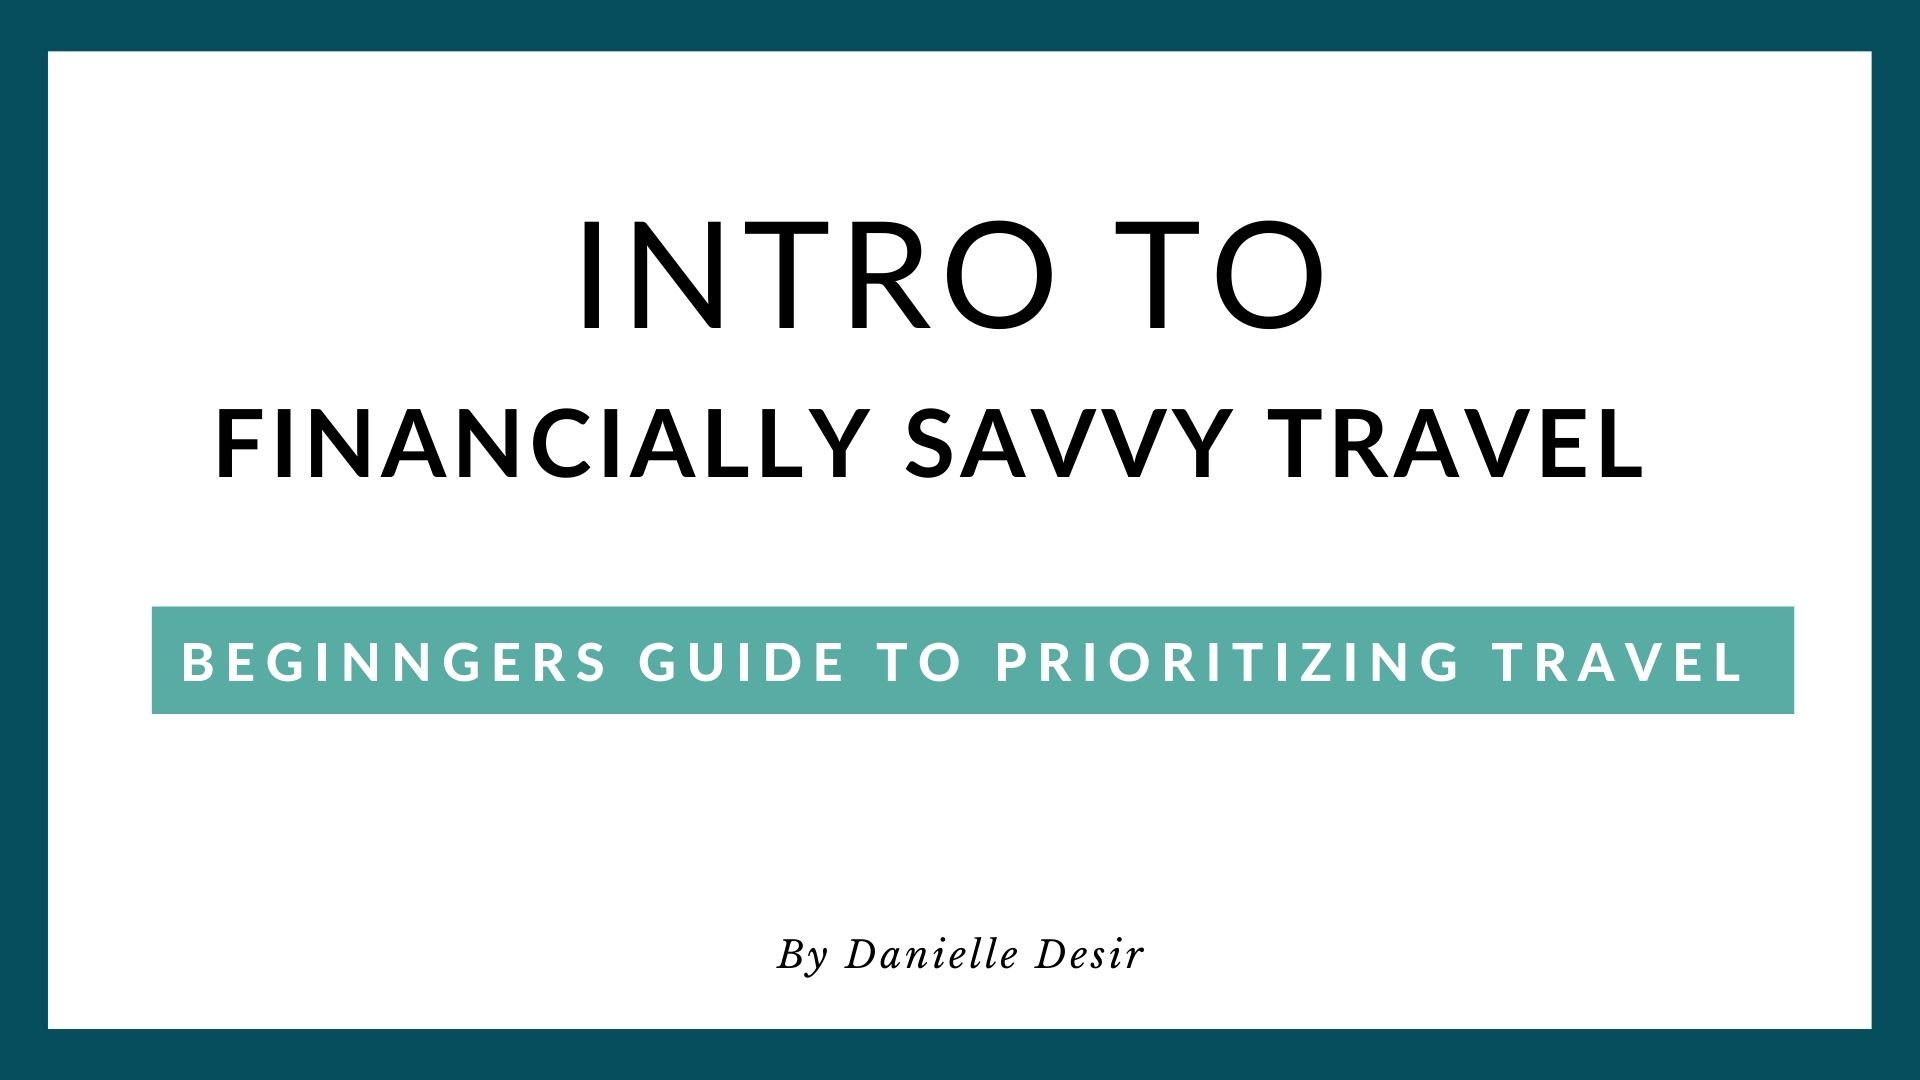 Intro to Financially Savvy Travel with Danielle Desir